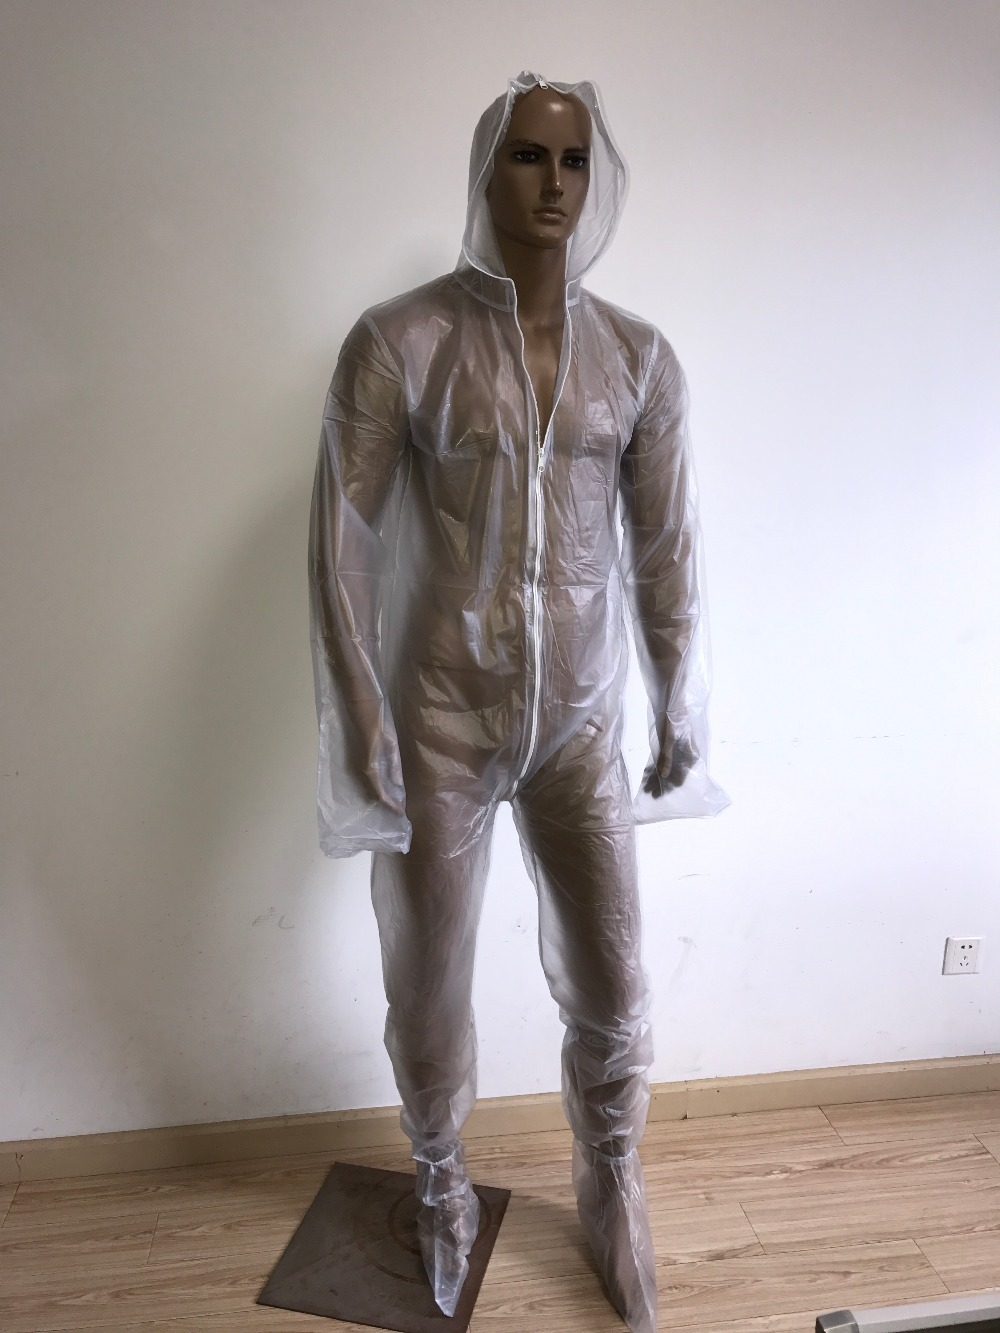 ABDL Male Dolly Long Totally Enclosed This Suit Has A Long P015 7T